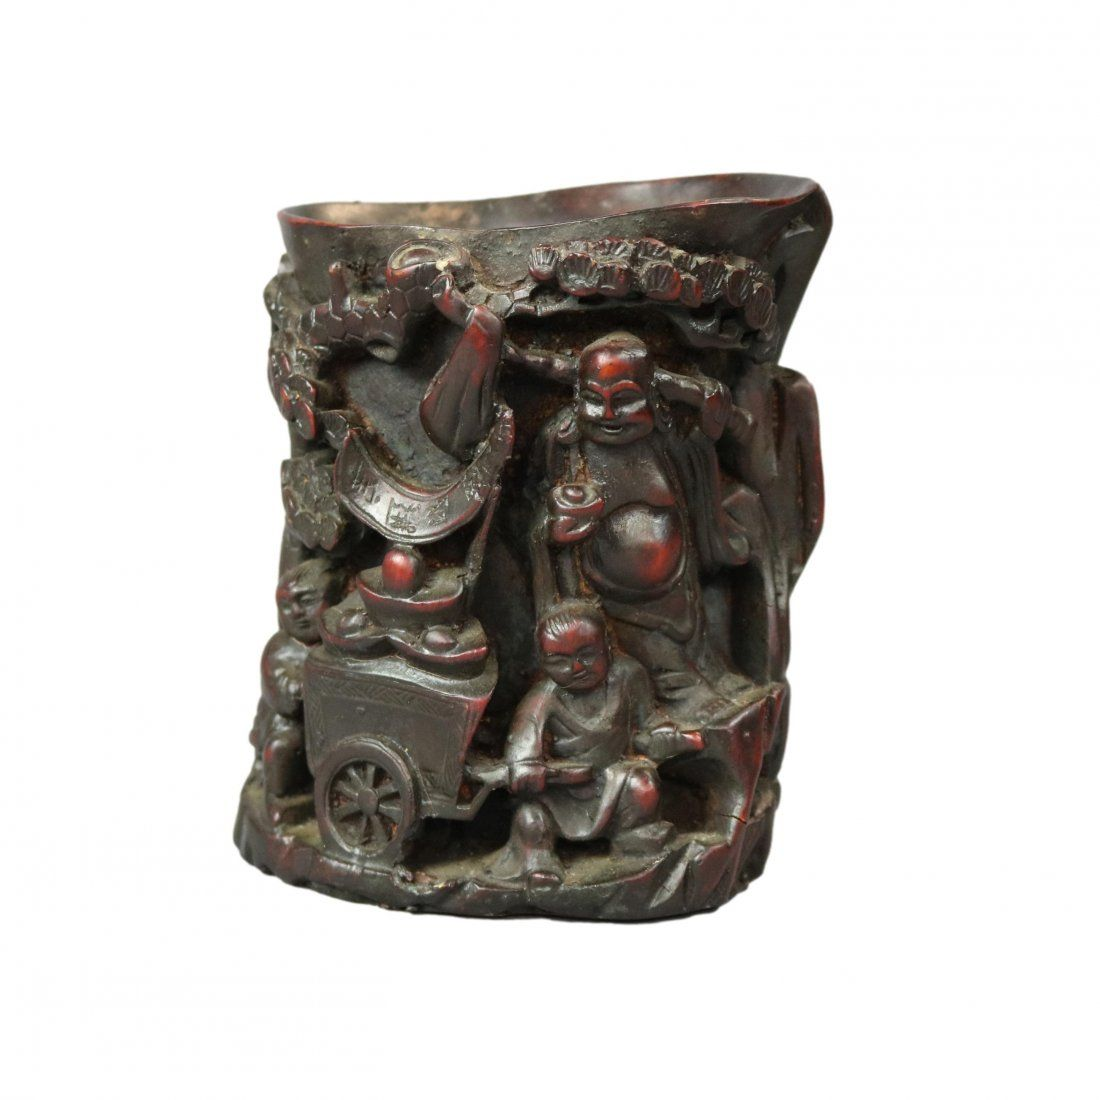 Chinese Carved In Relief Resin Libation Cup, 20th